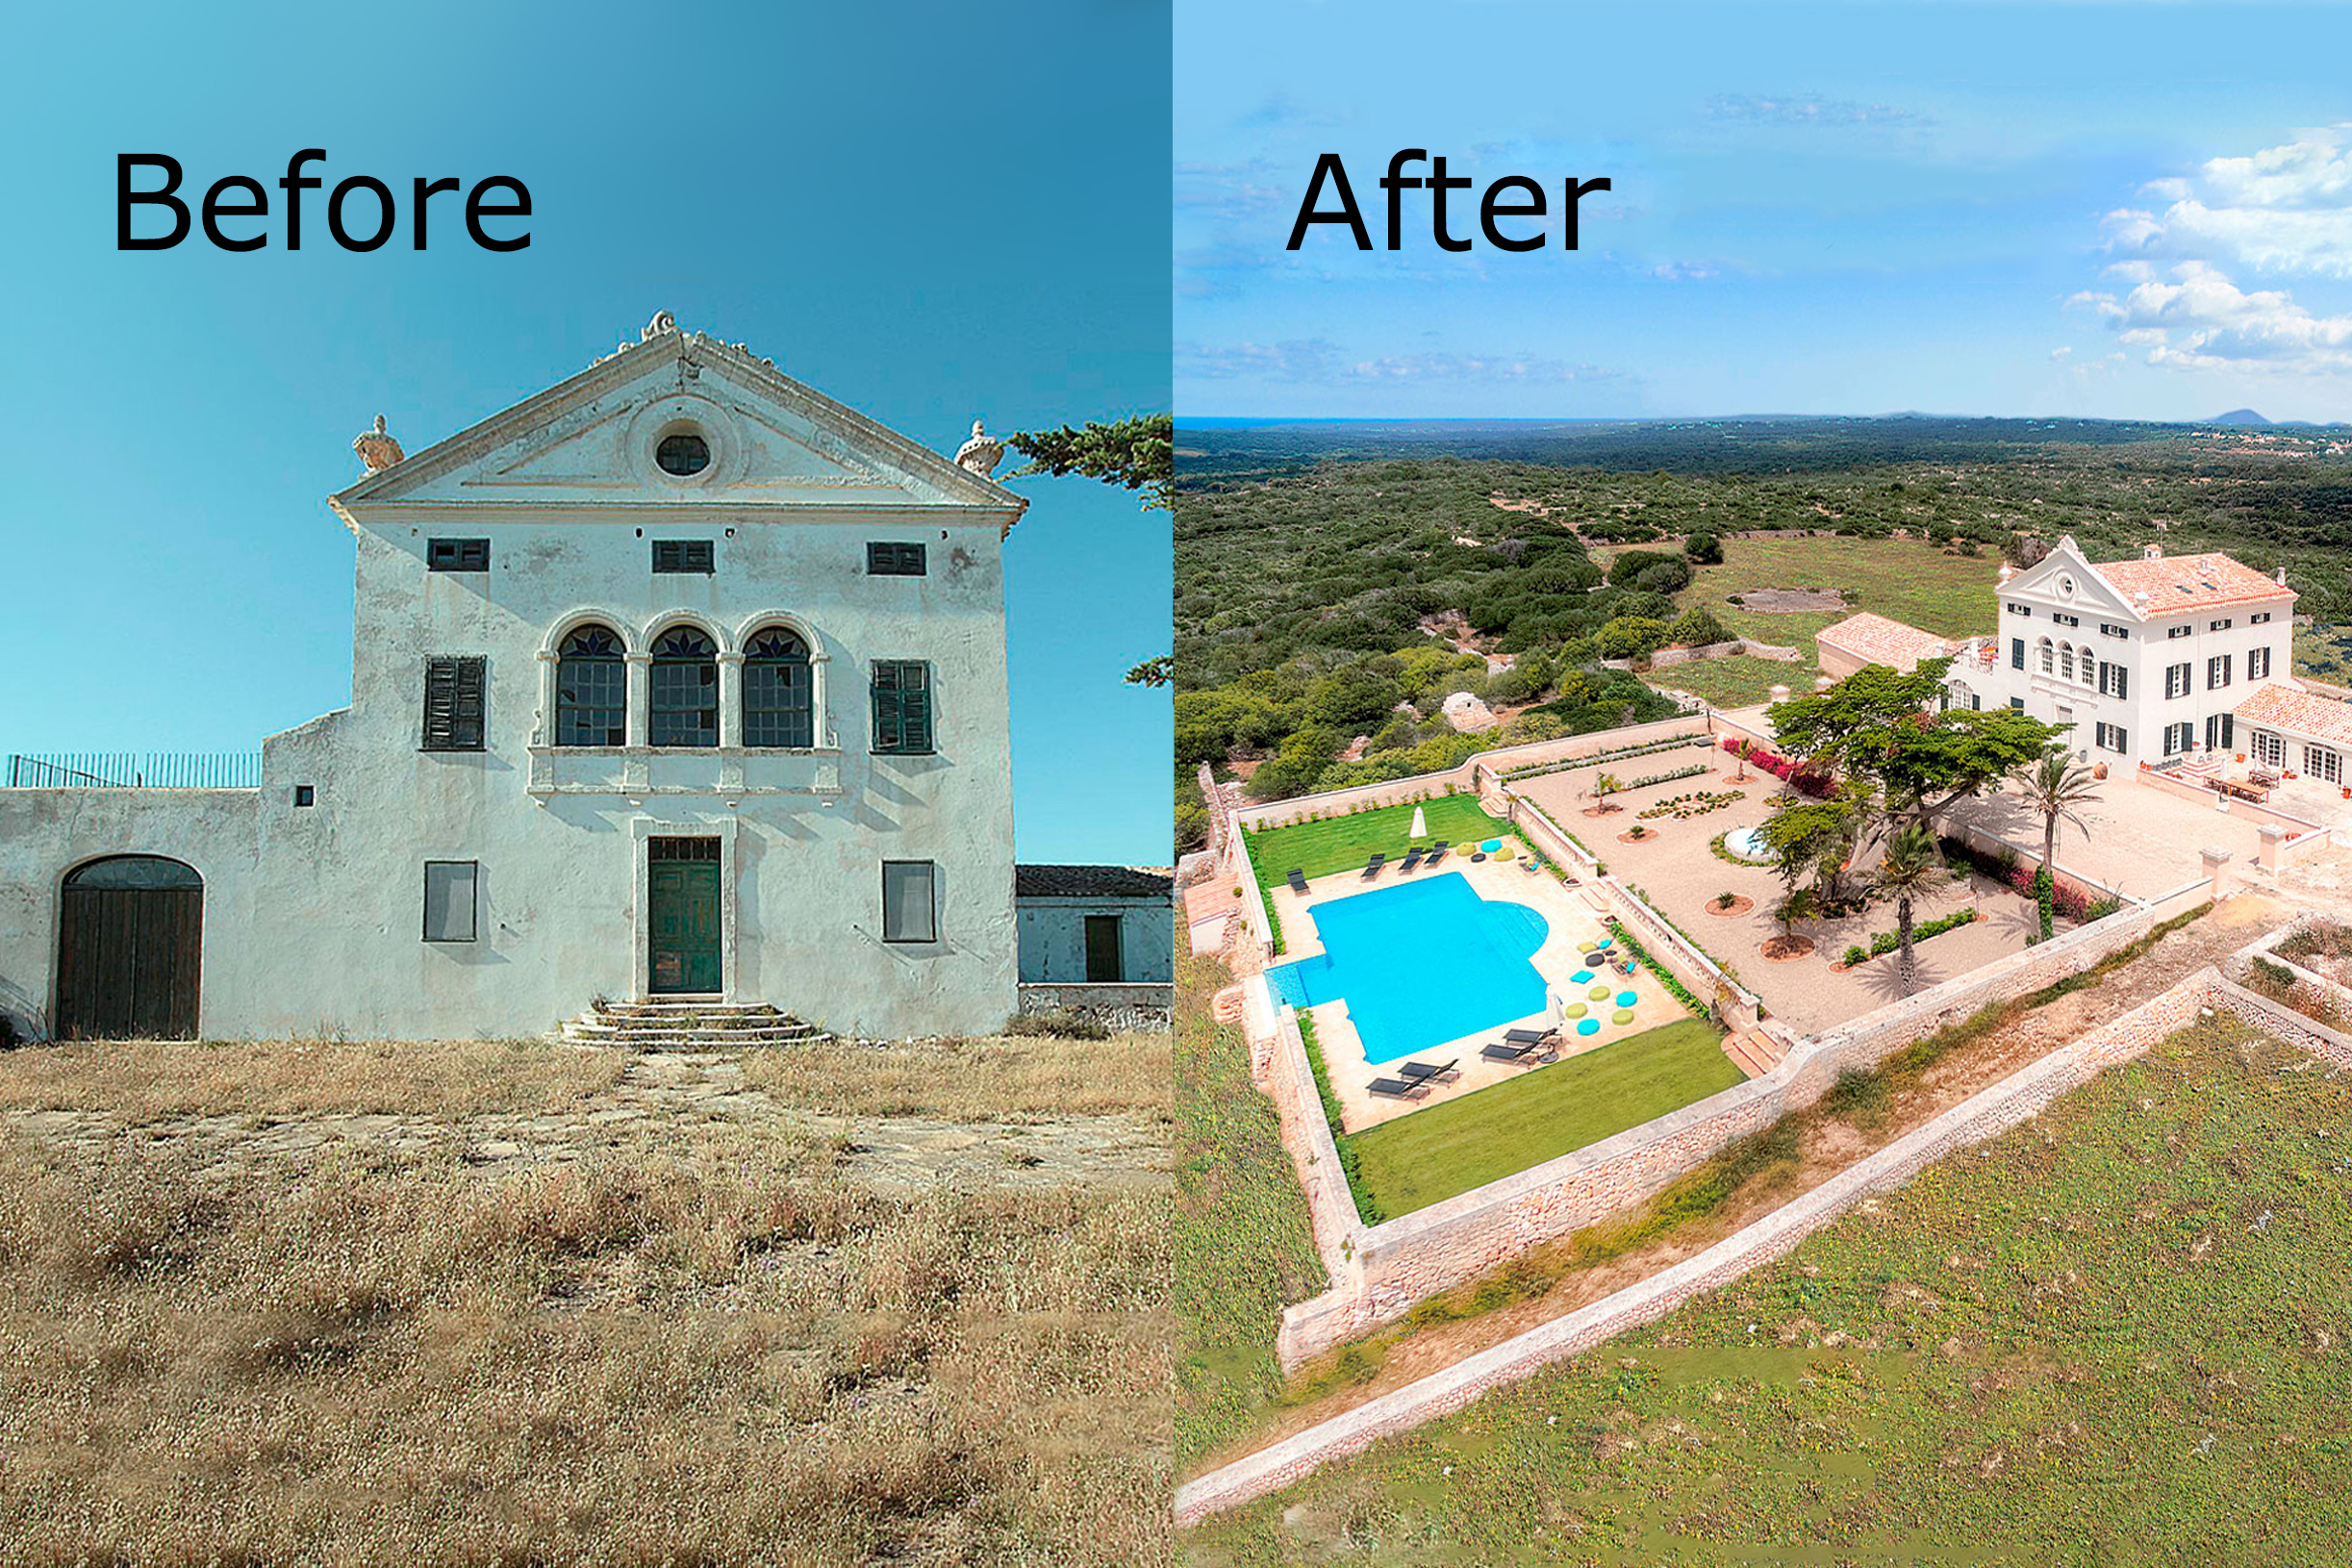 Refurbishing a house in Menorca and surviving the experience